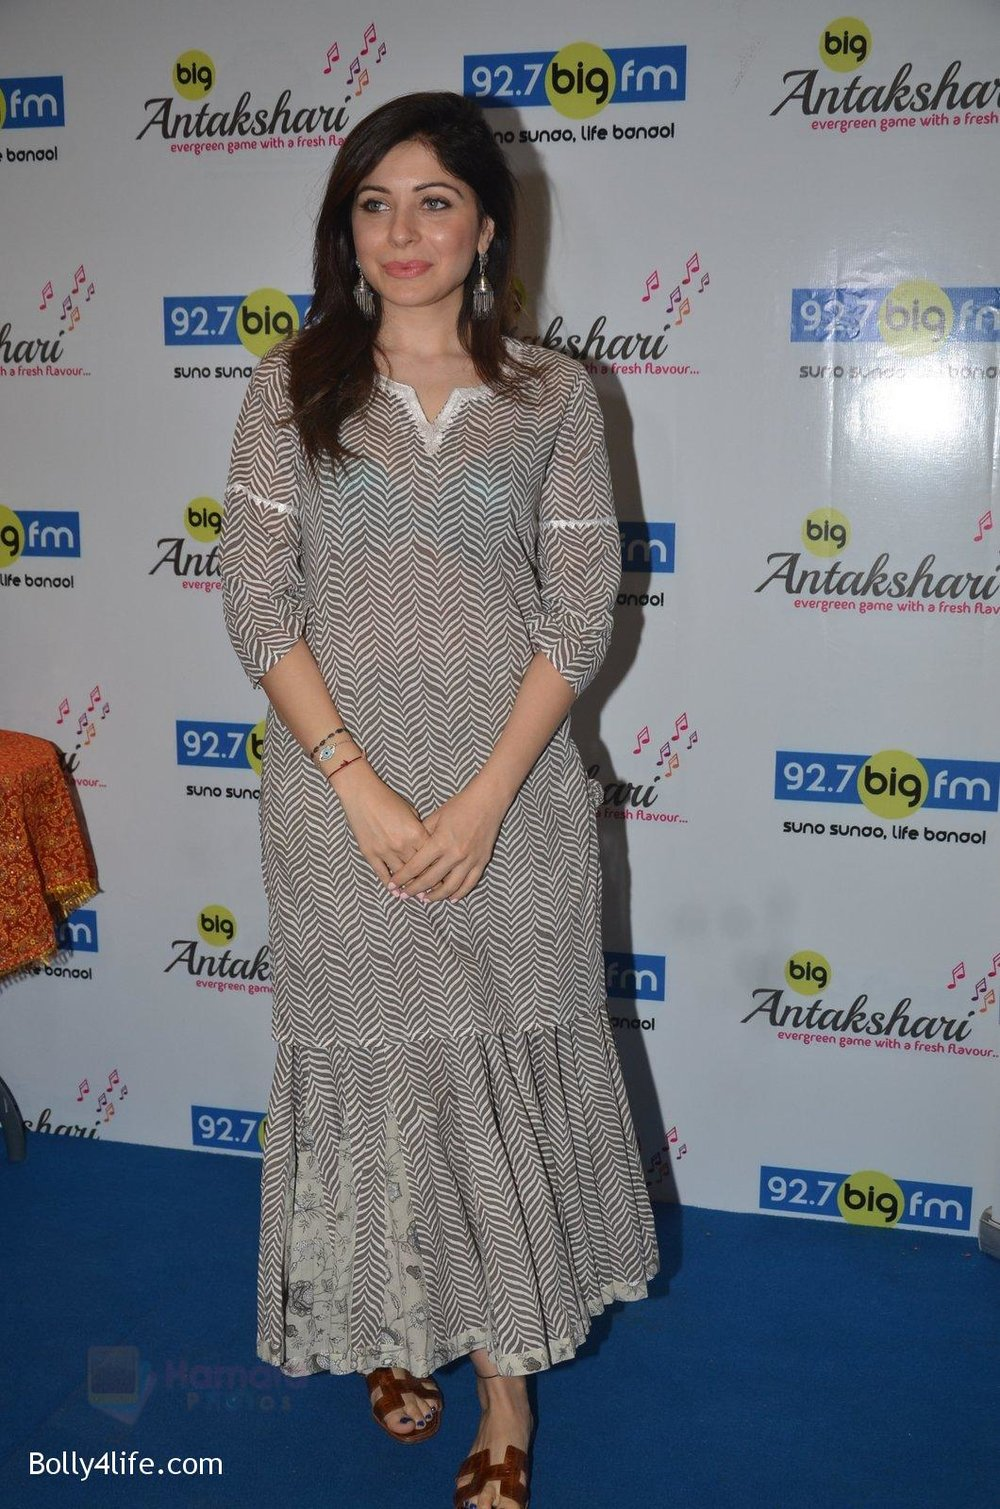 Kanika-Kapoor-at-Big-FM-on-14th-Sept-2016-2.jpg